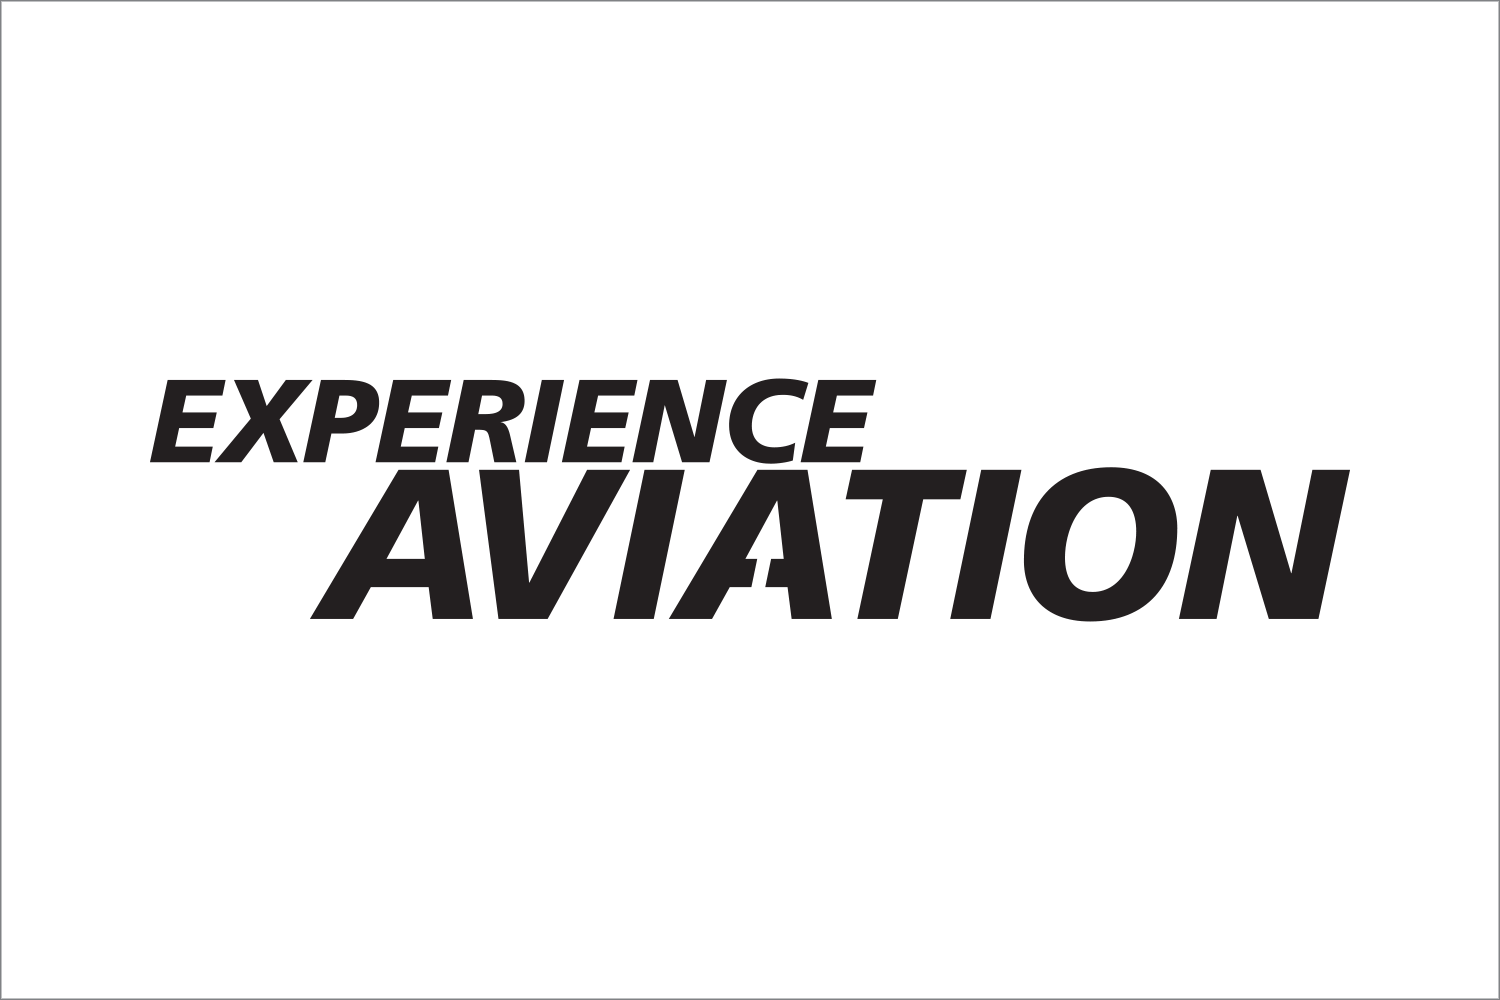 experienceaviation.png